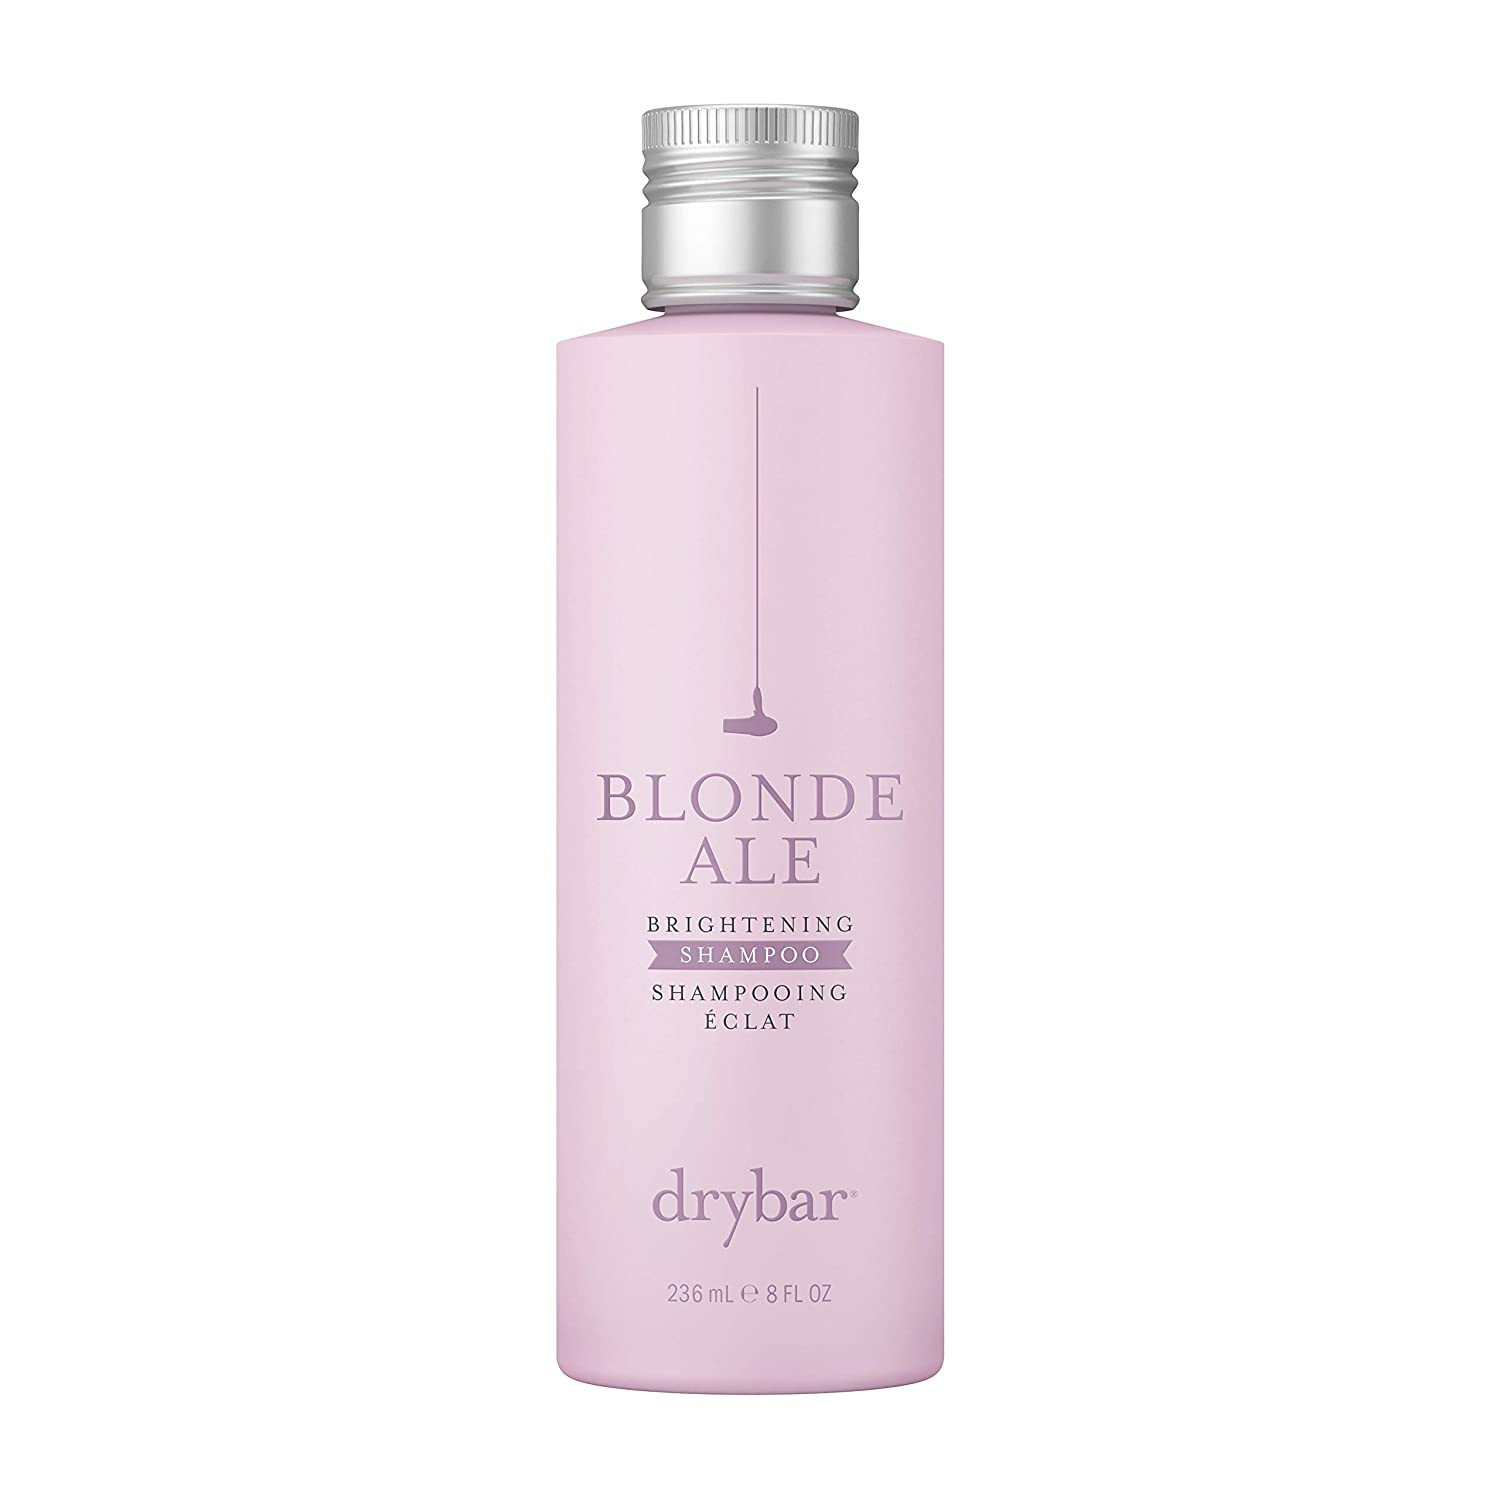 Drybar Blonde Ale Brightening Shampoo, 8 oz.